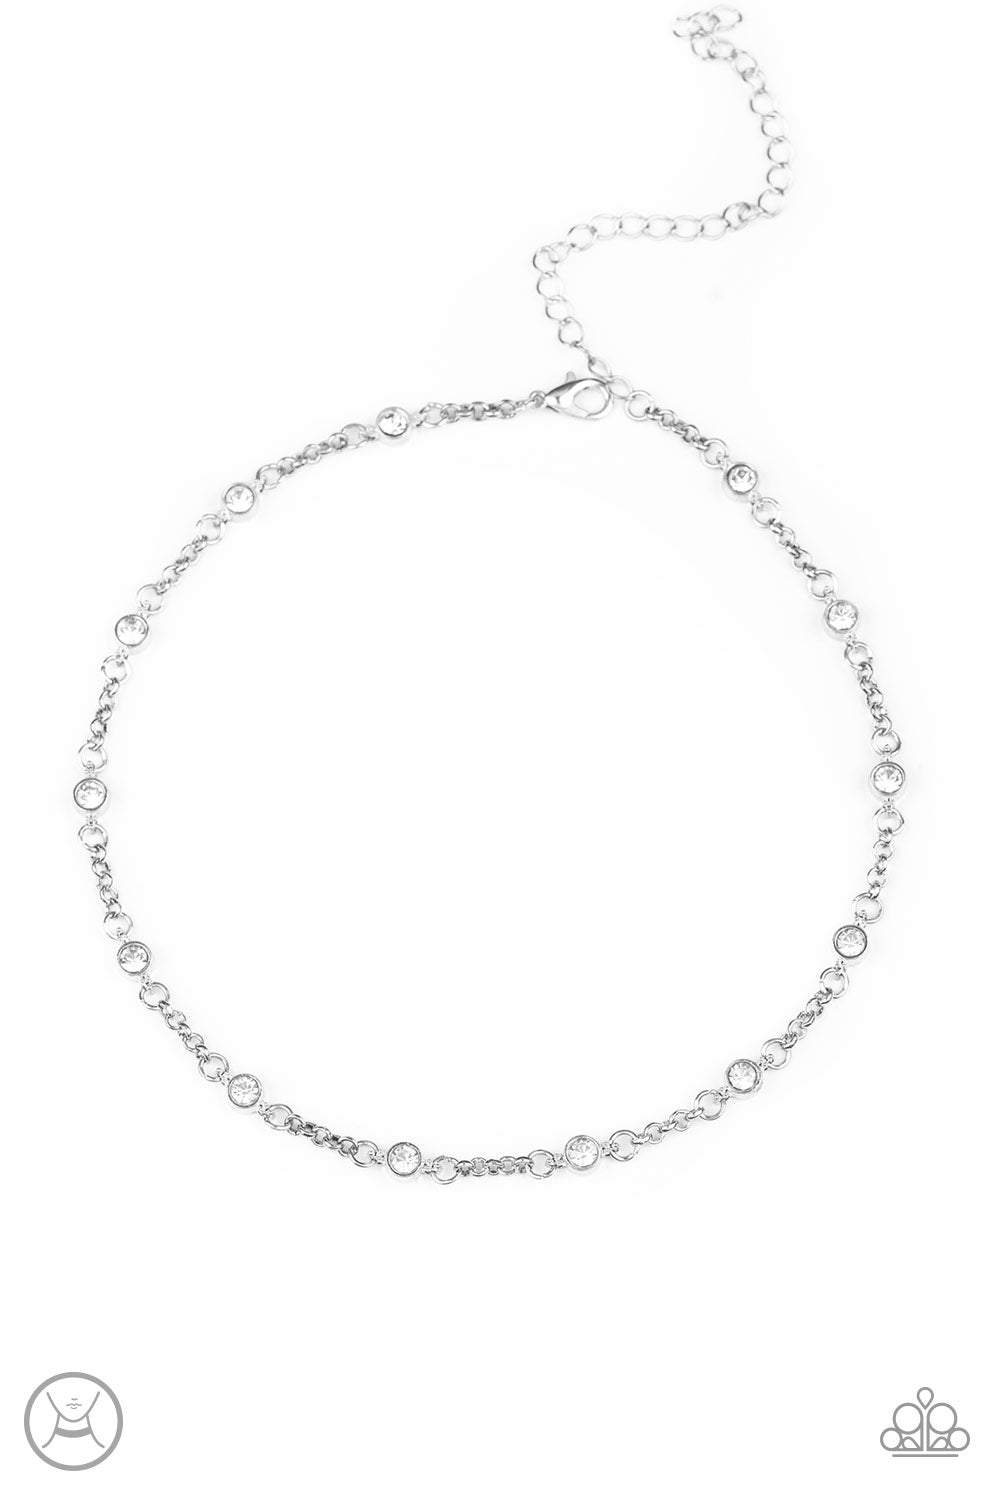 Stunningly Stunning Choker White Necklace